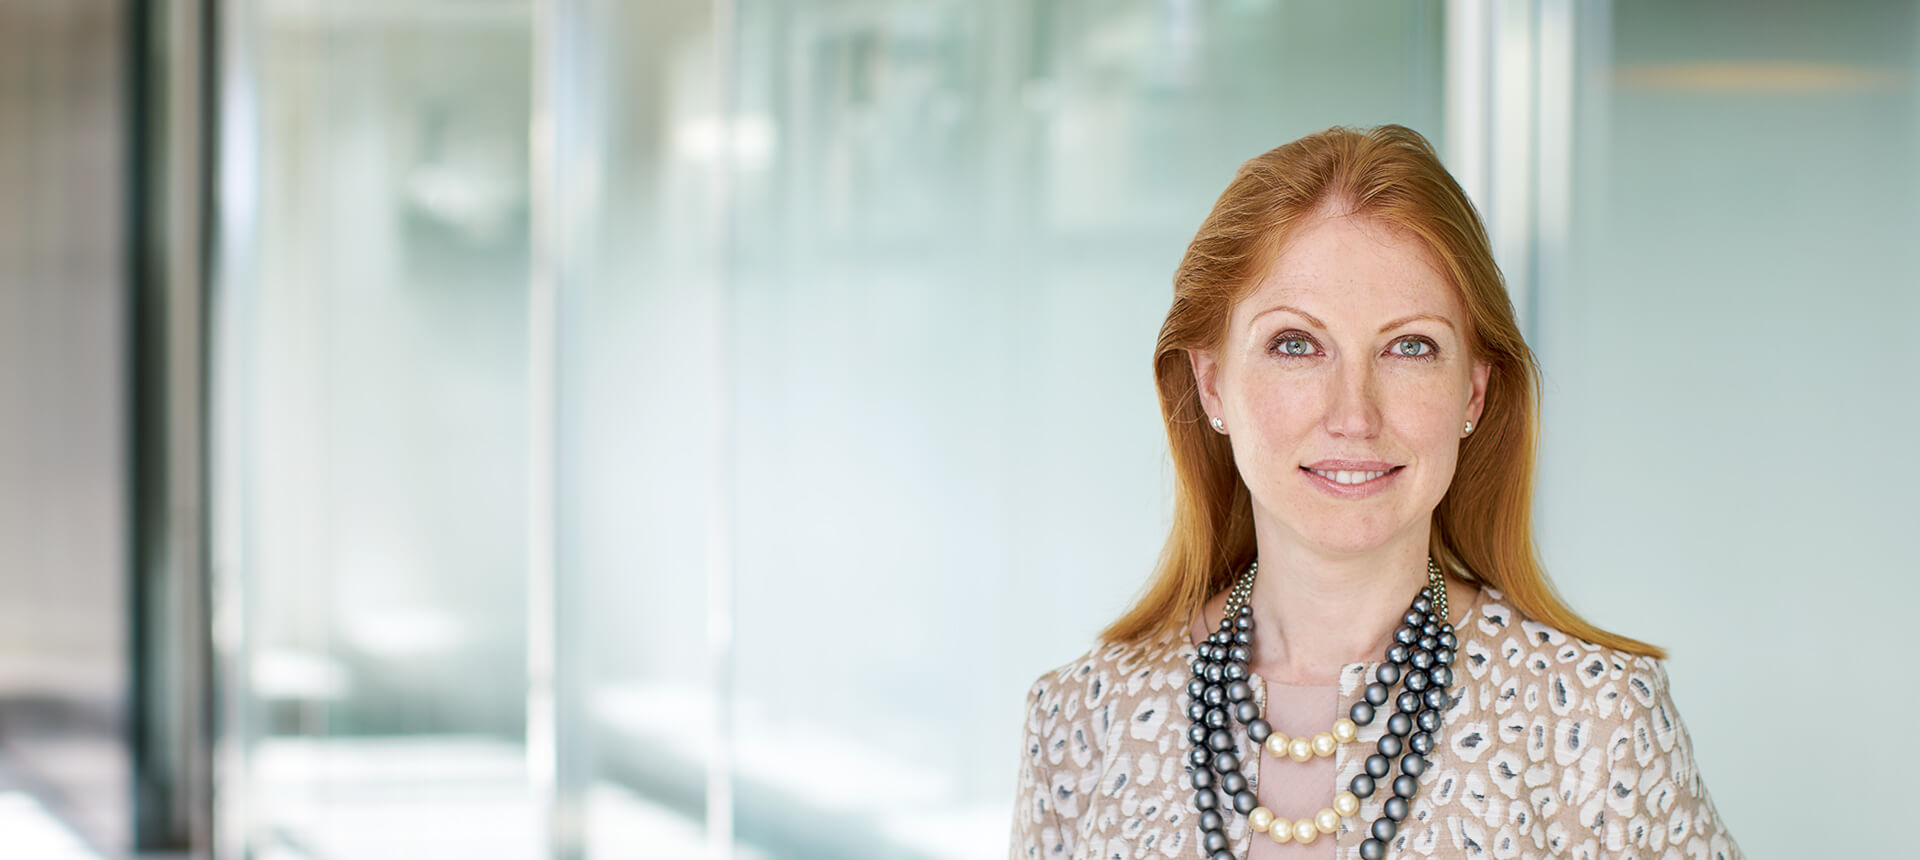 Jenni Hibbert, the newly appointed Global Managing Partner & Head of Search Go-to-Market